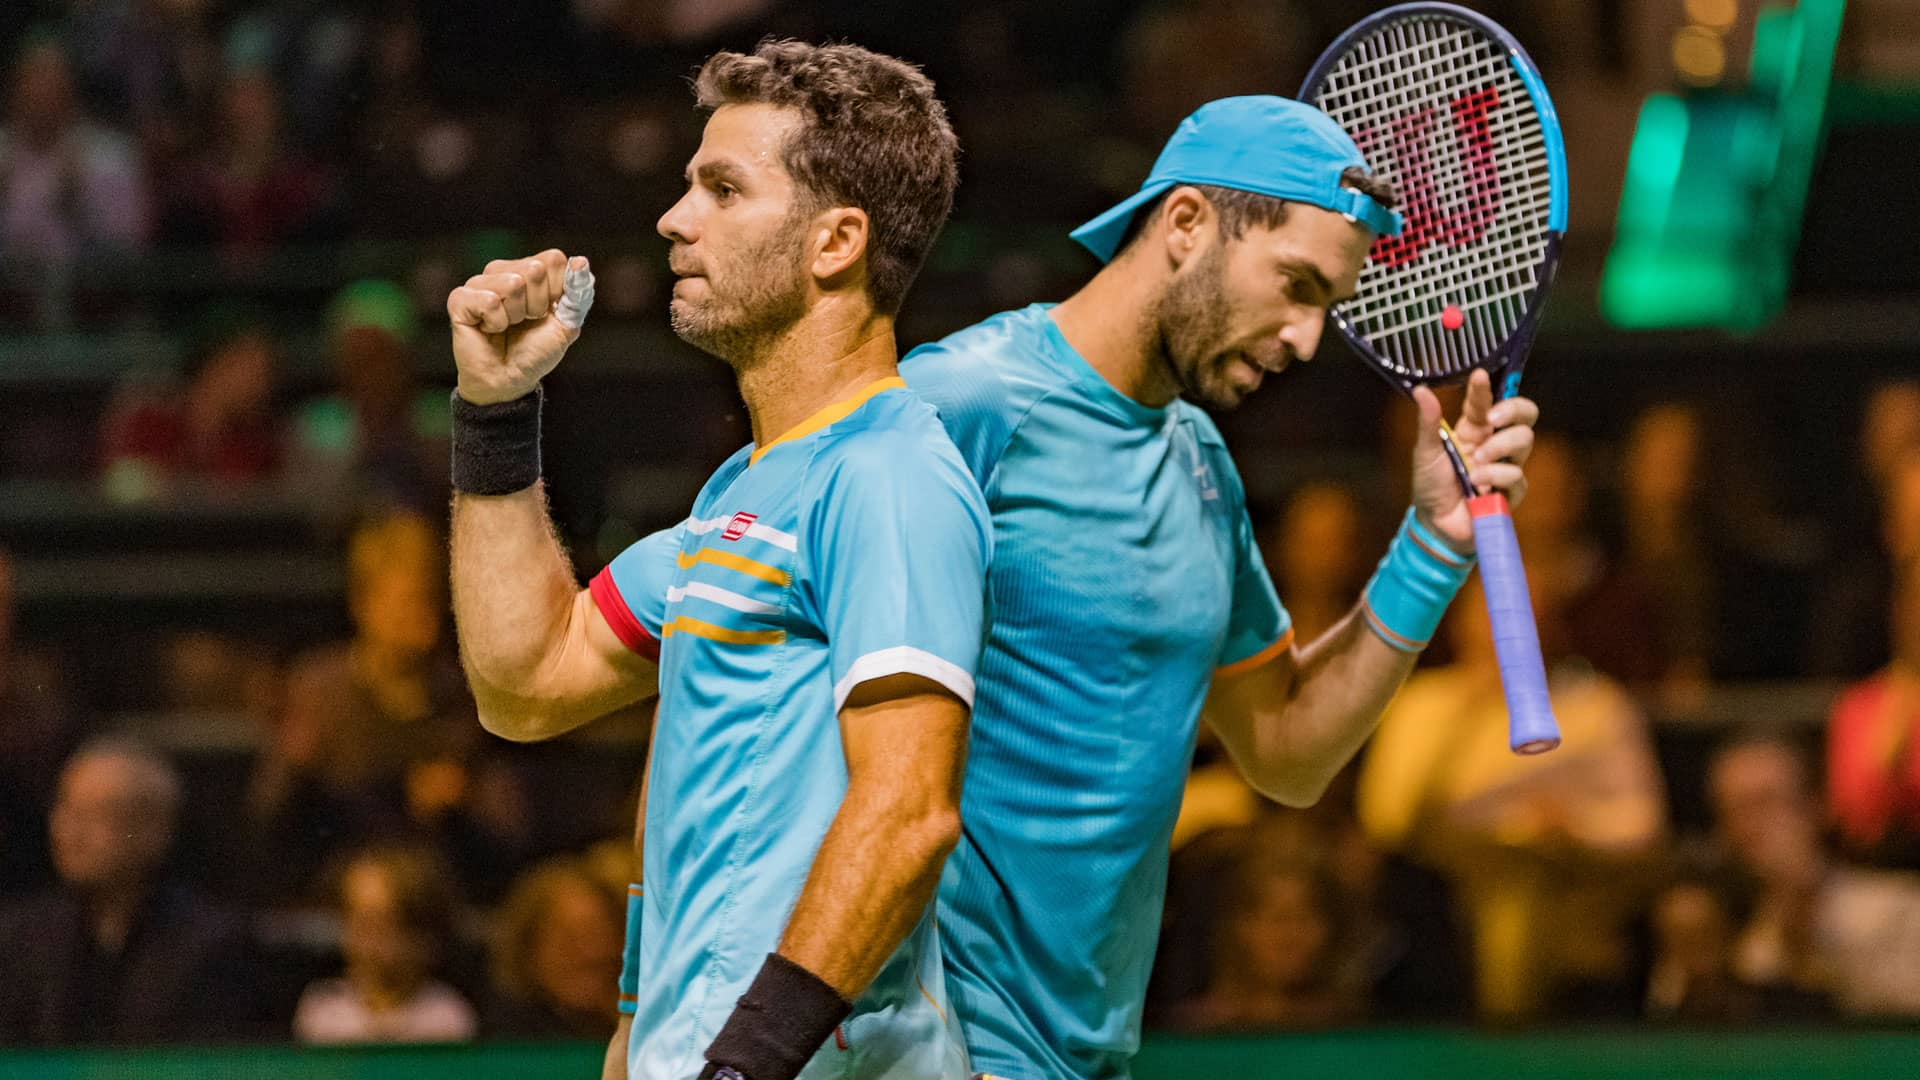 Rojer Tecau Reach Rotterdam Final Saturday